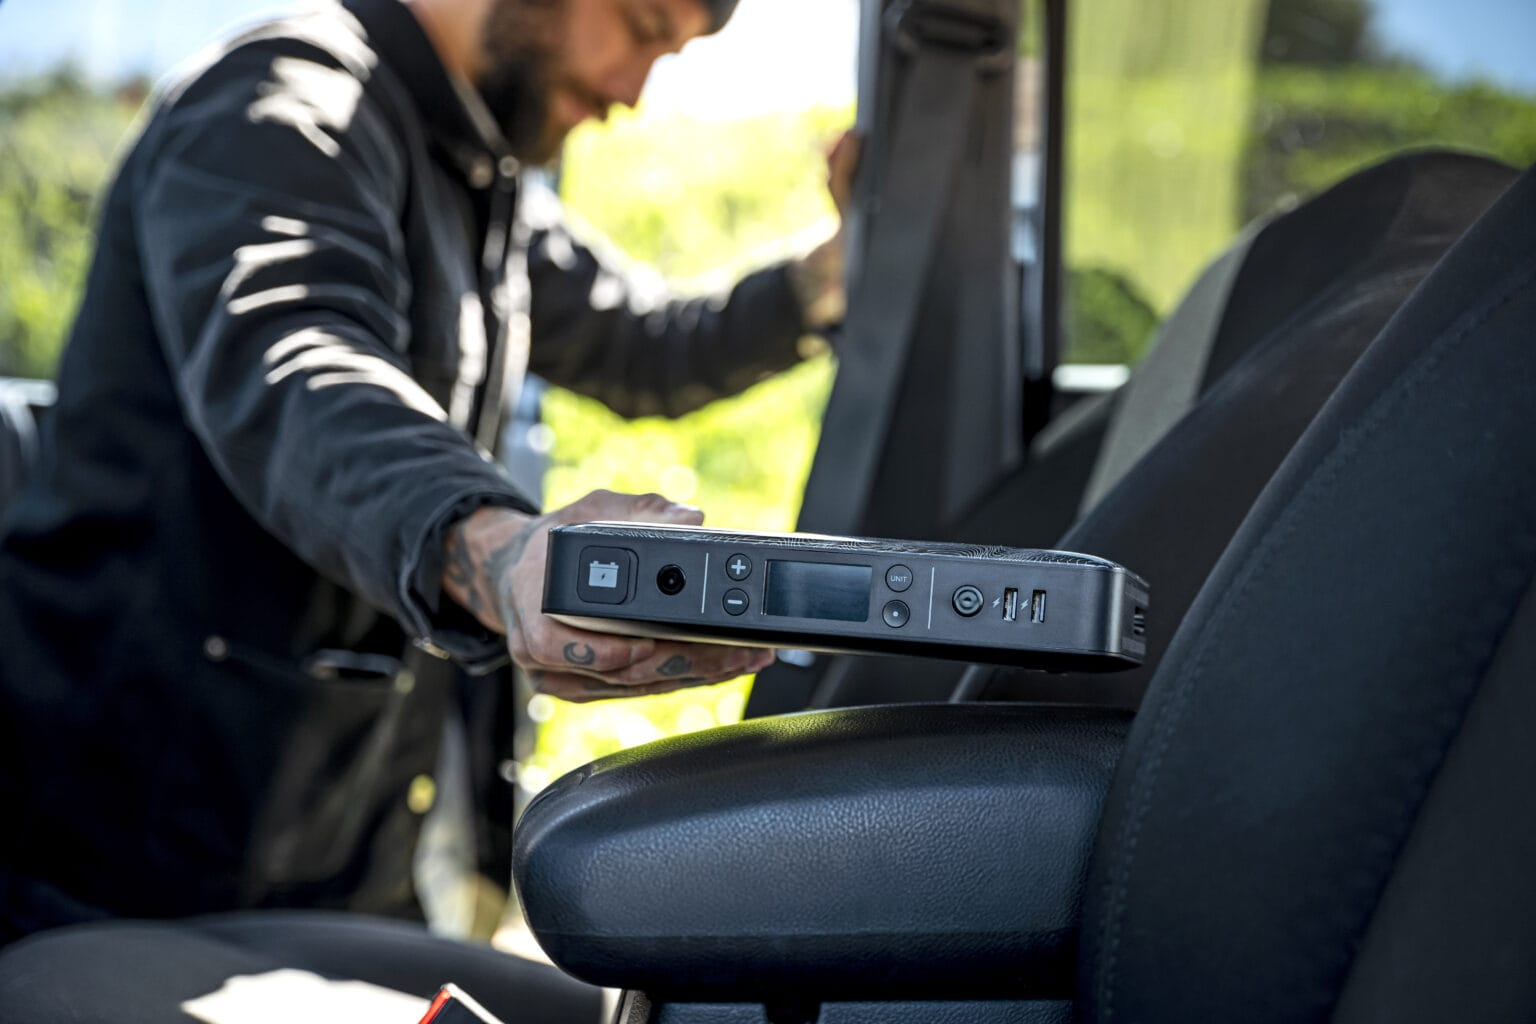 powerstation go rugged line from Mophie